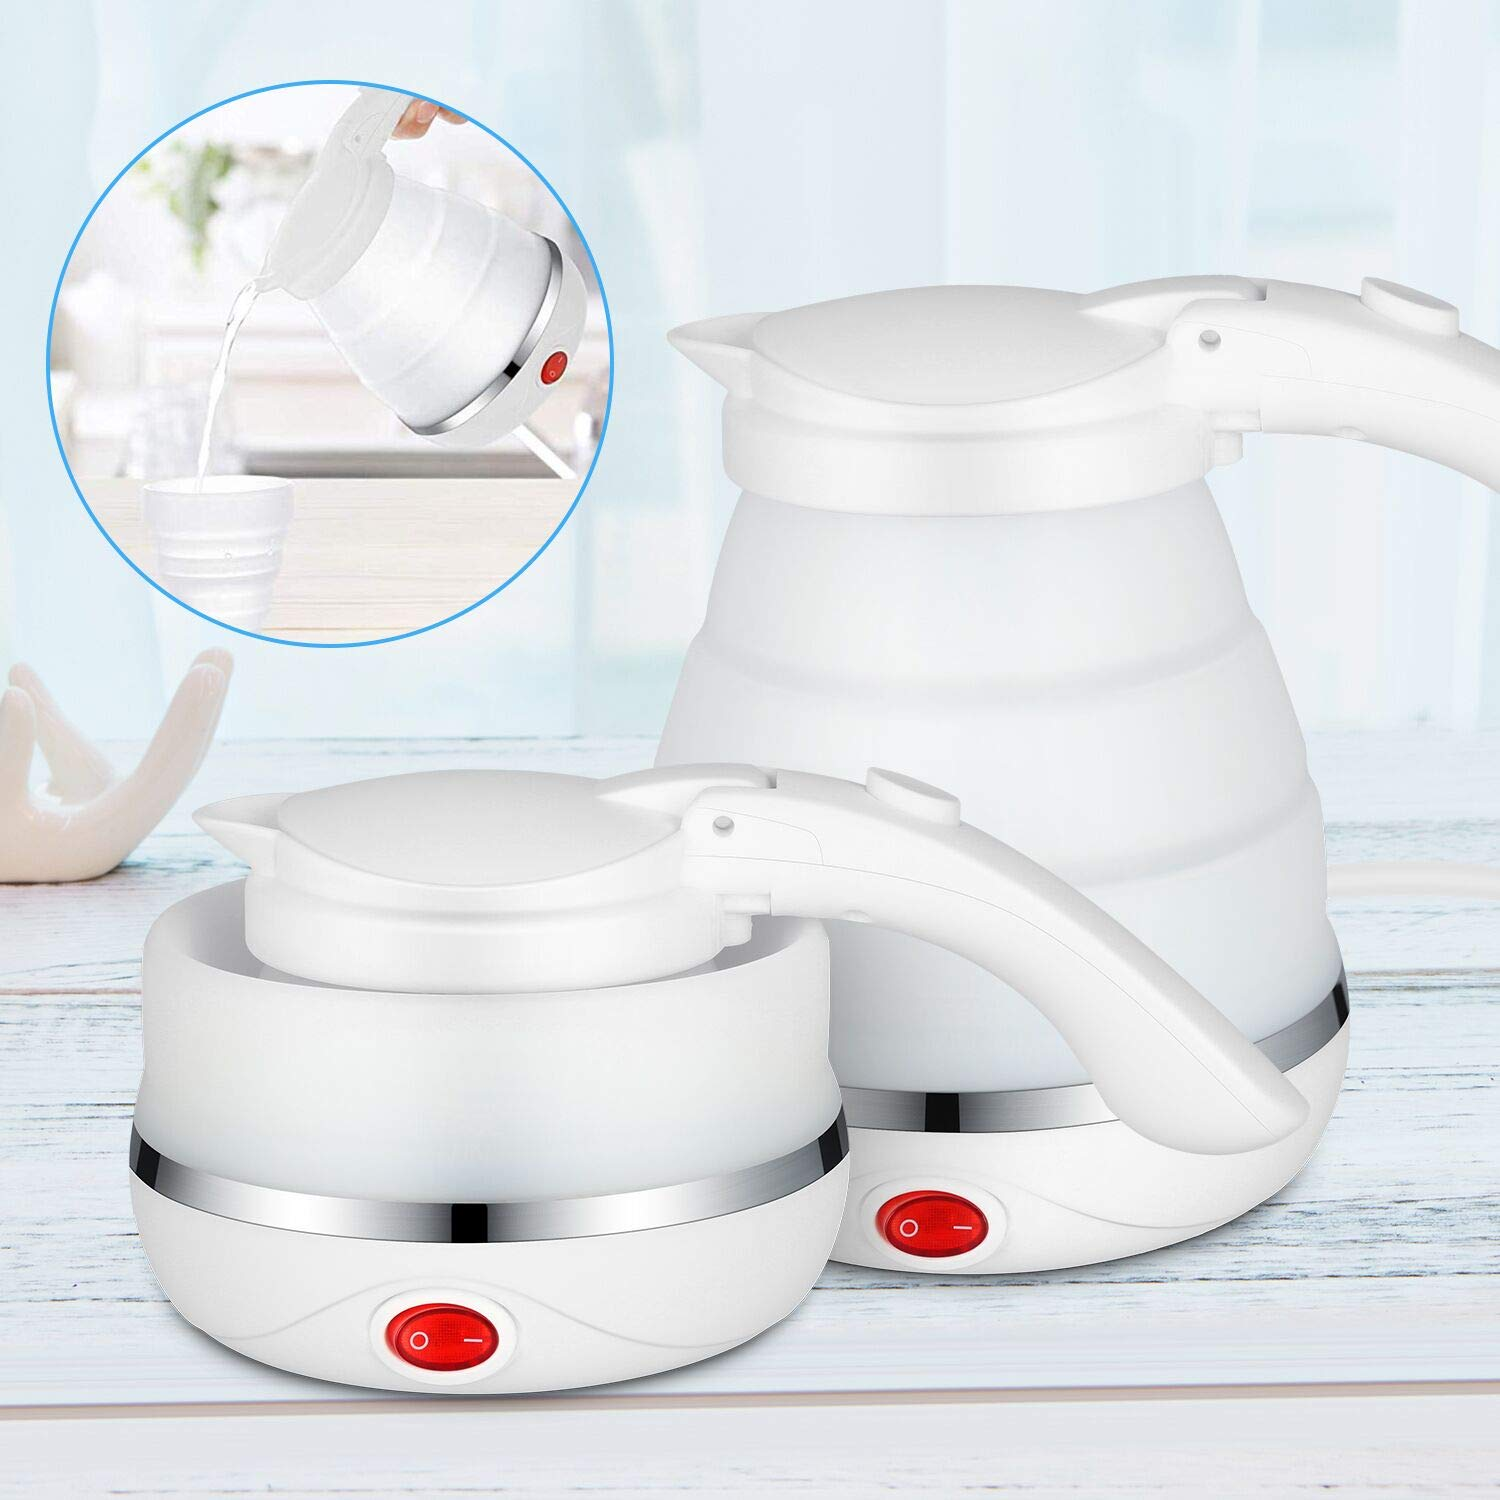 V VONTOX Foldable Travel Electric Kettle, Foldable Kettle Dual Voltage 100V-240V, with Folding Cup, Food Grade Silicone, 750ML-Boil about 5 Minutes, Portable, Used in Coffee, Tea, Milk, etc